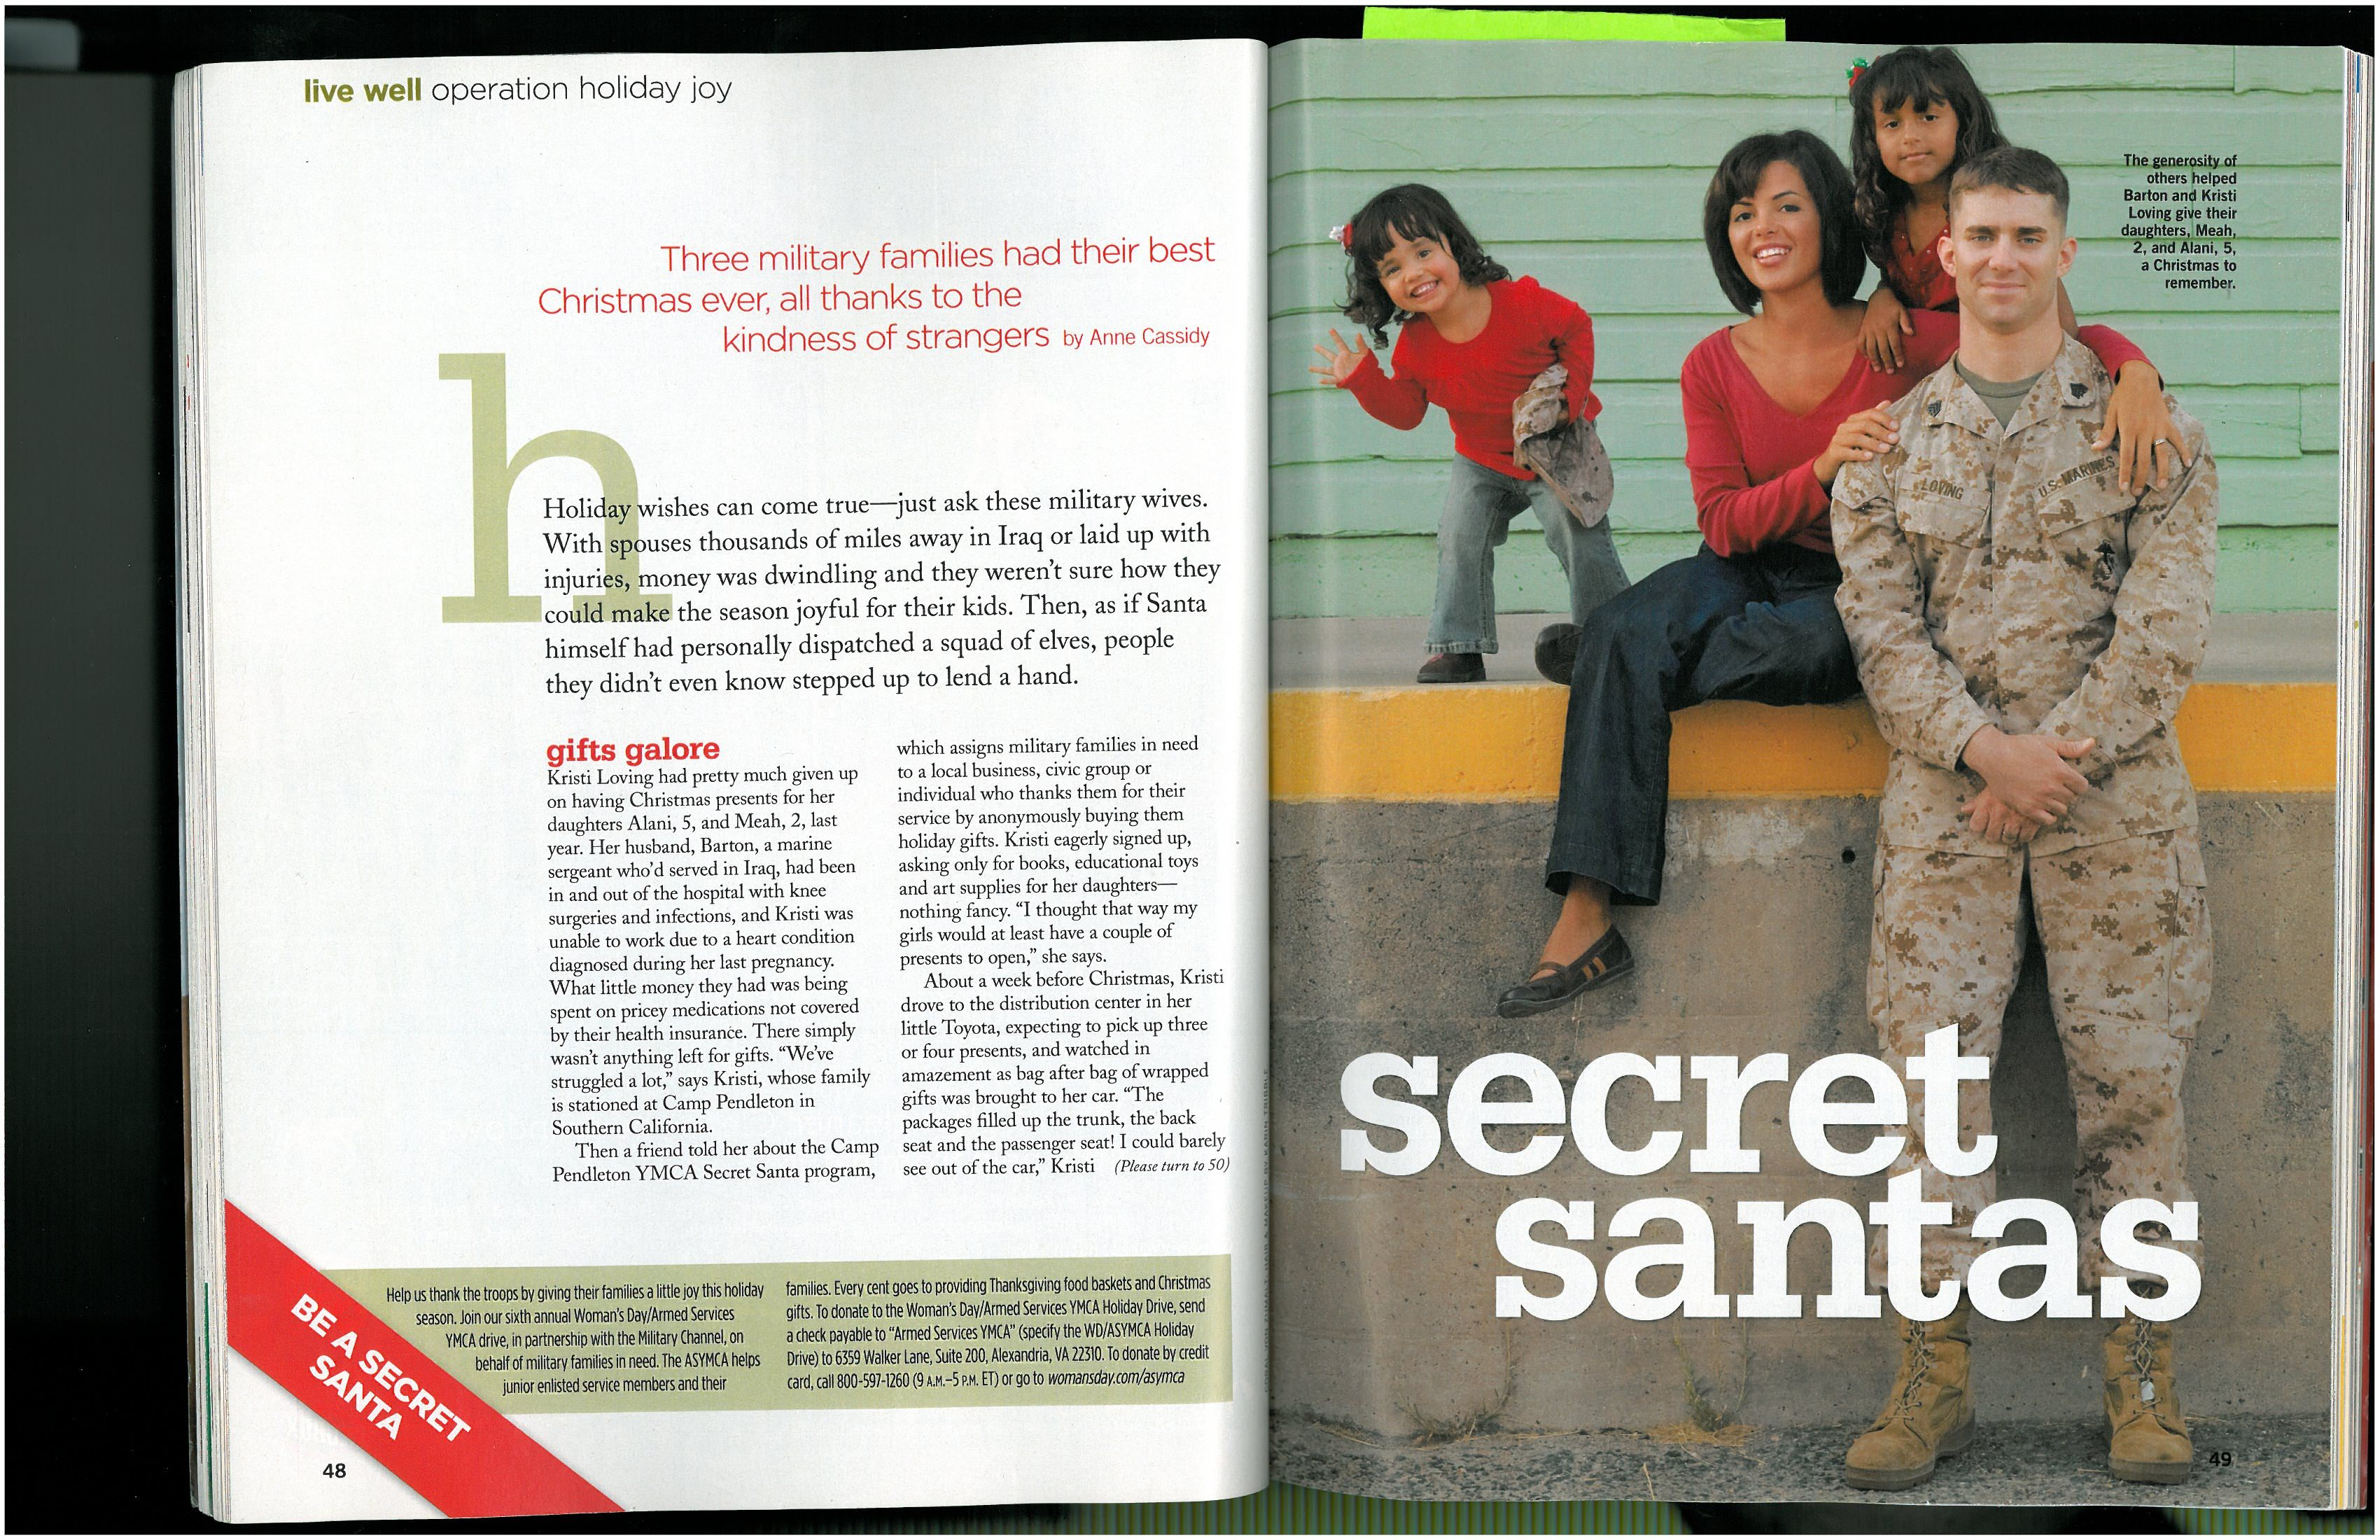 You can be a Secret Santa for Troops this holiday season!